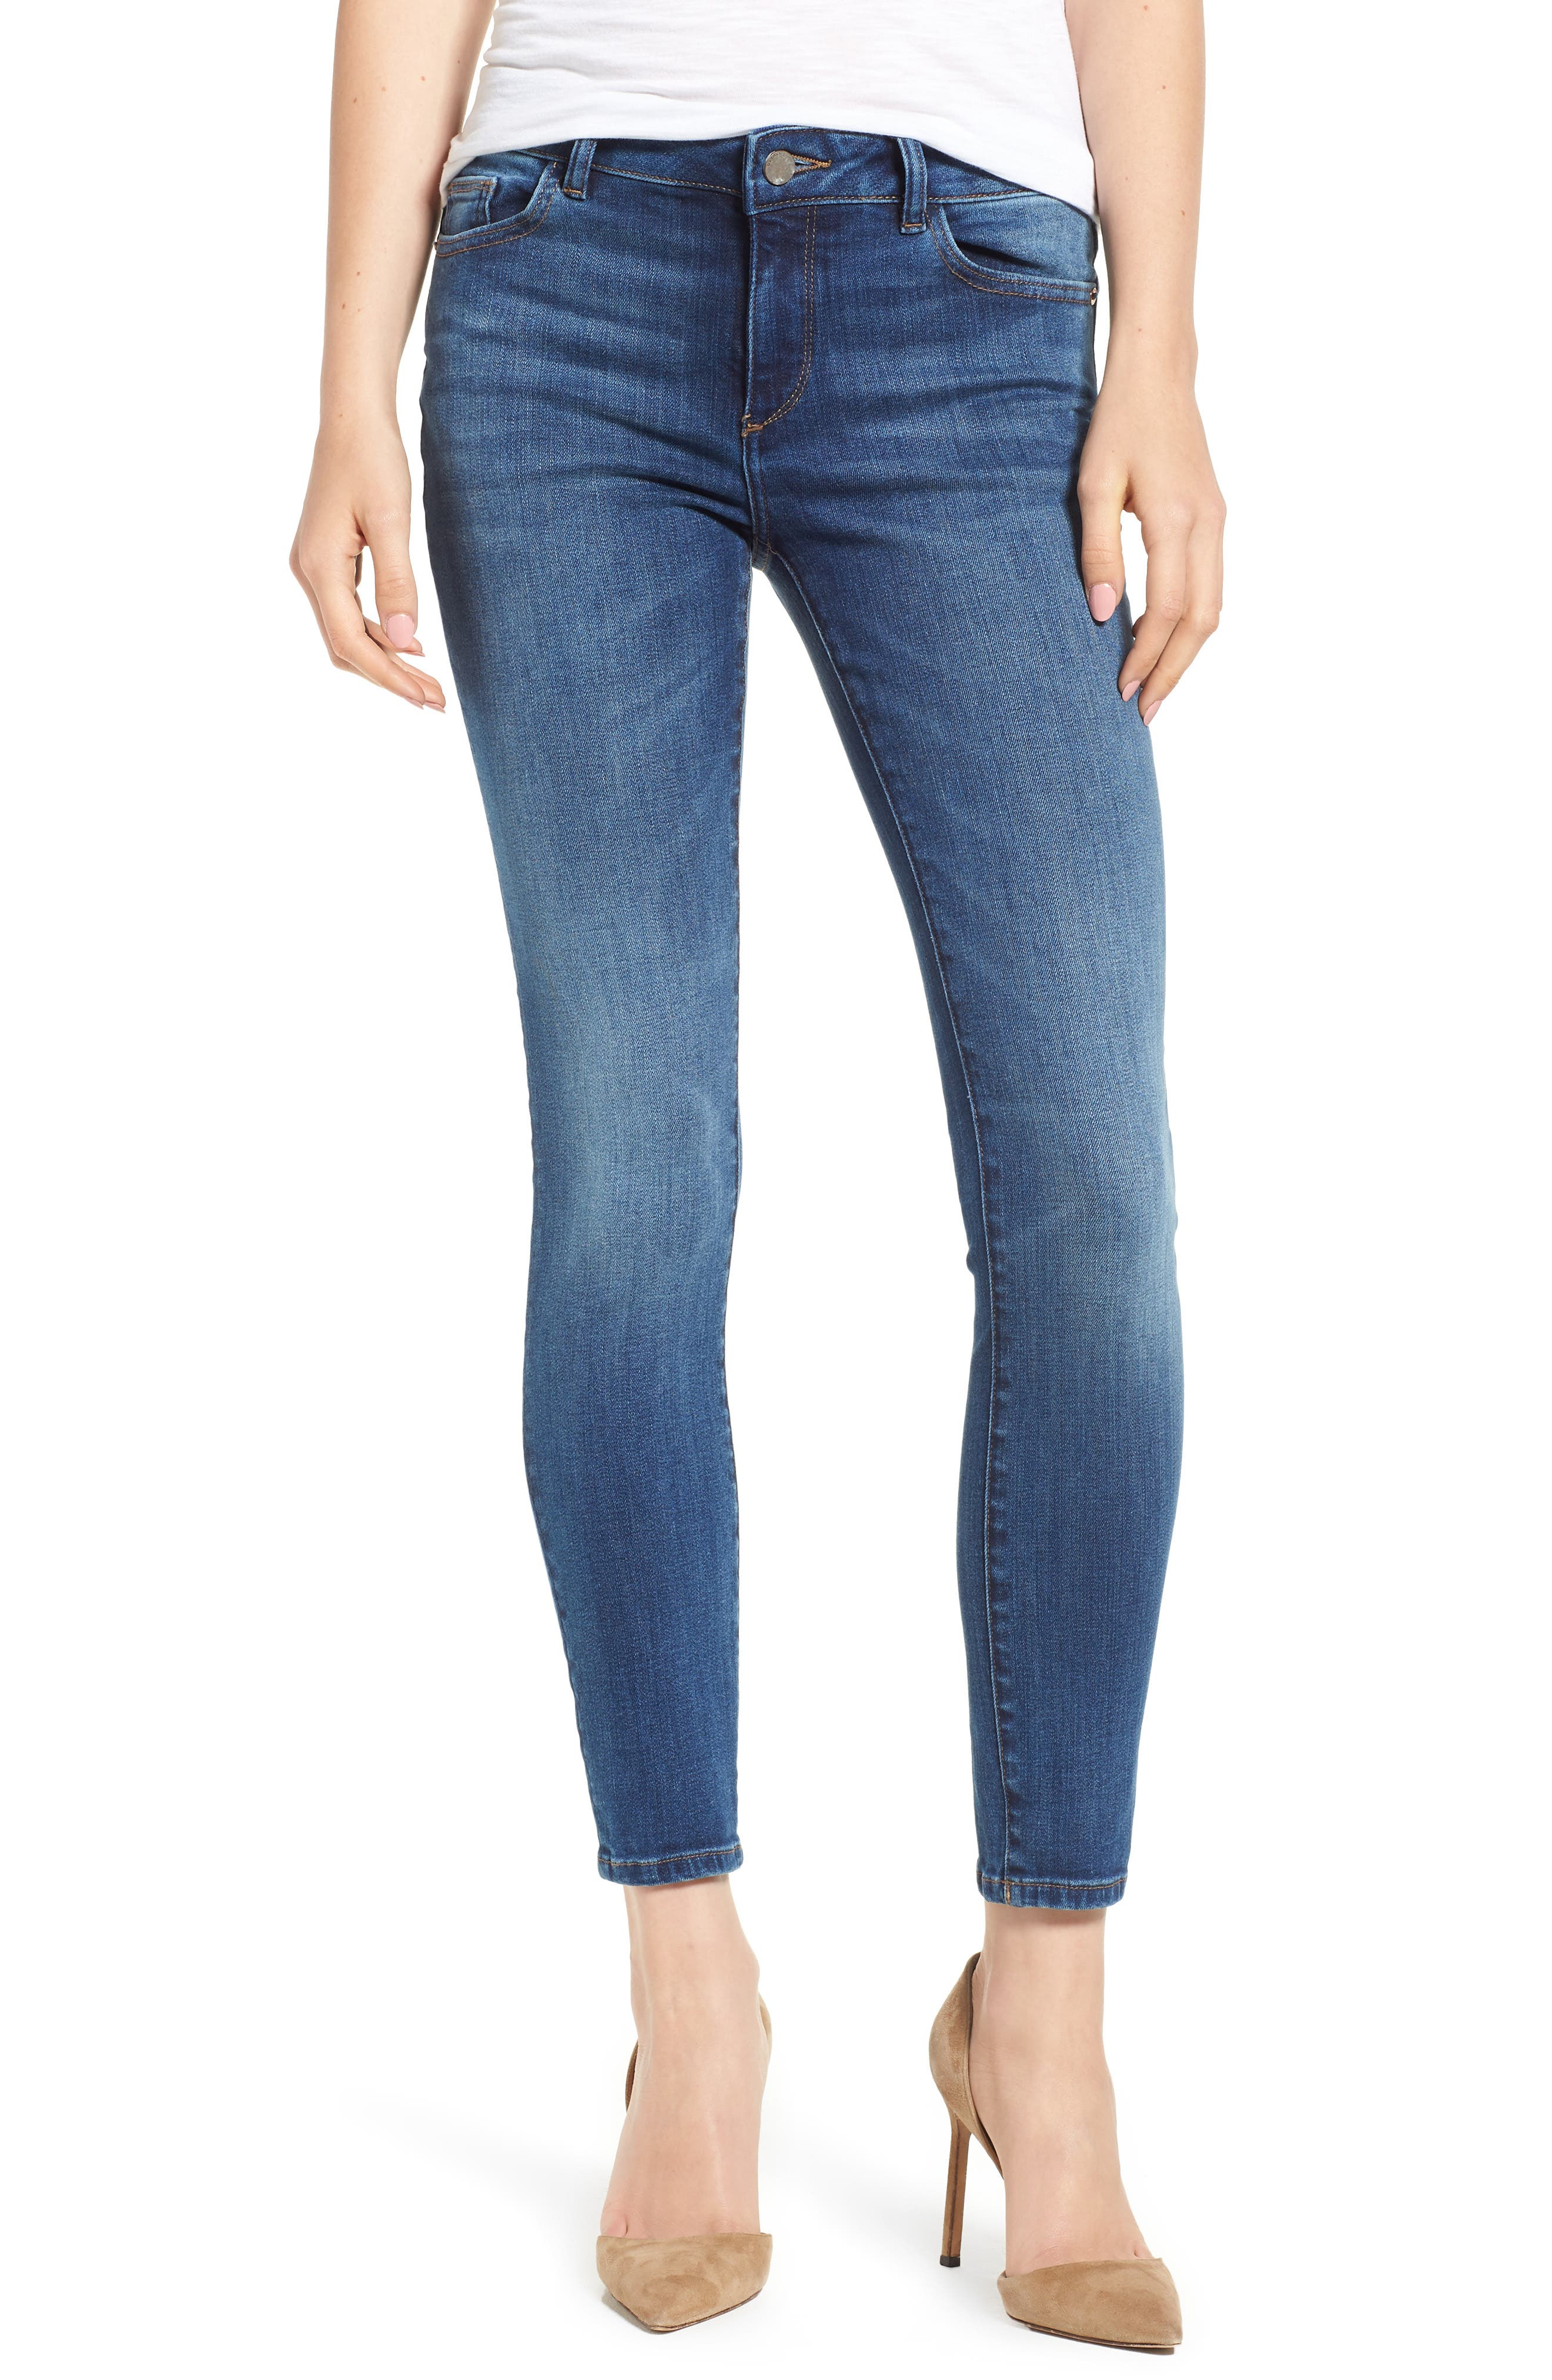 DL1961 Florence Midrise Instasculpt Ankle Skinny Jeans, Main, color, SABINE